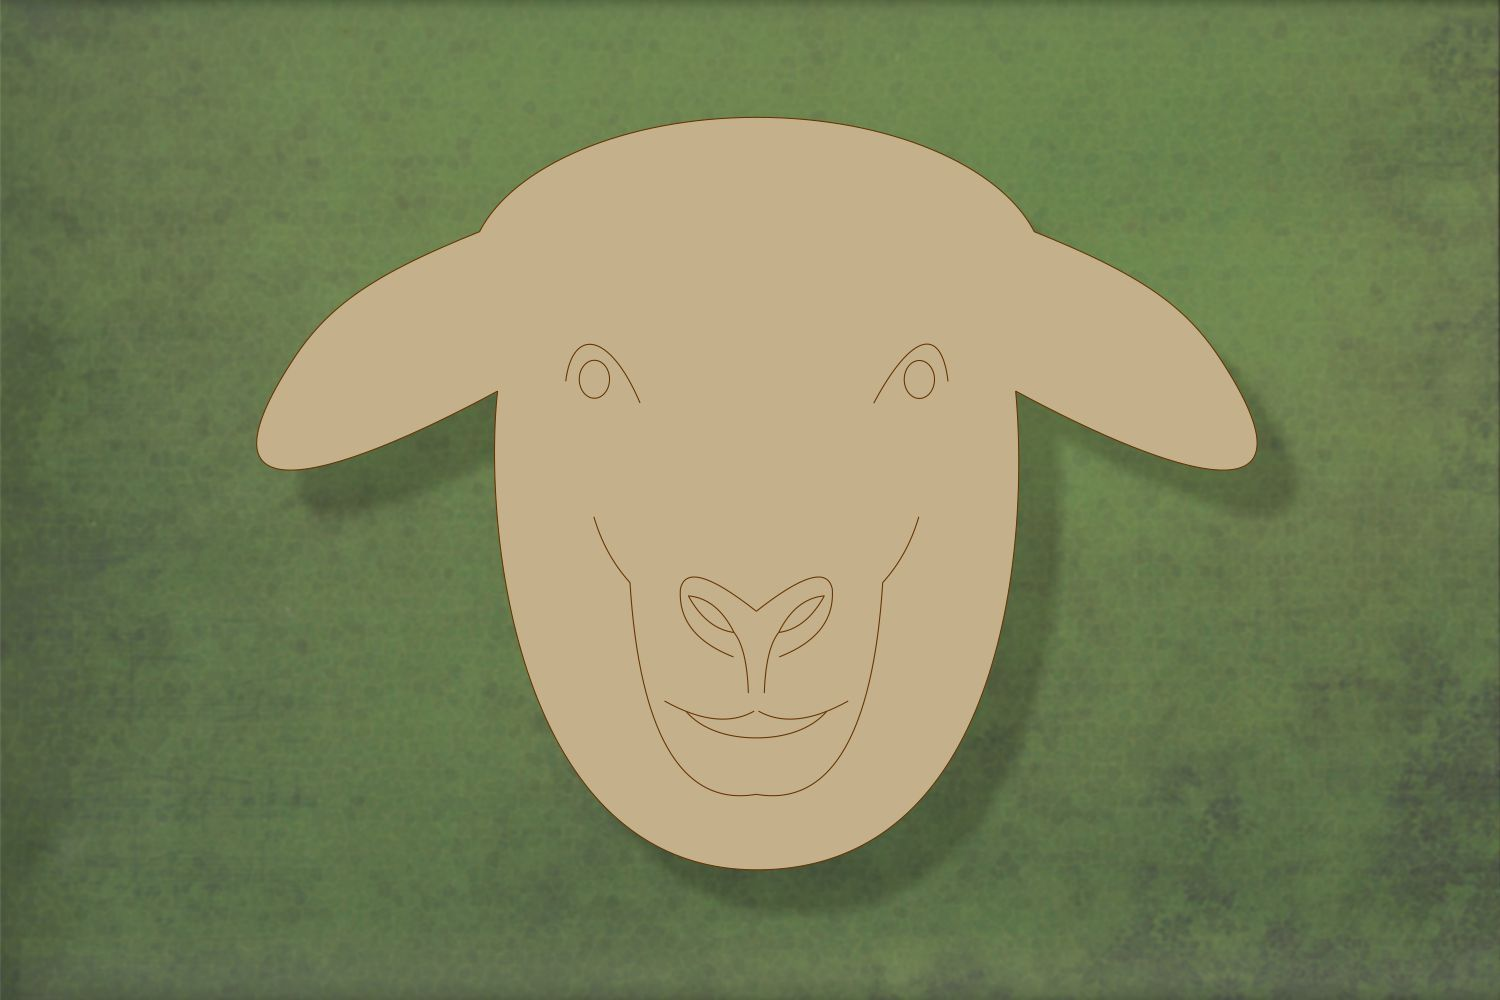 Laser cut, blank wooden Sheep head with etched face shape for craft